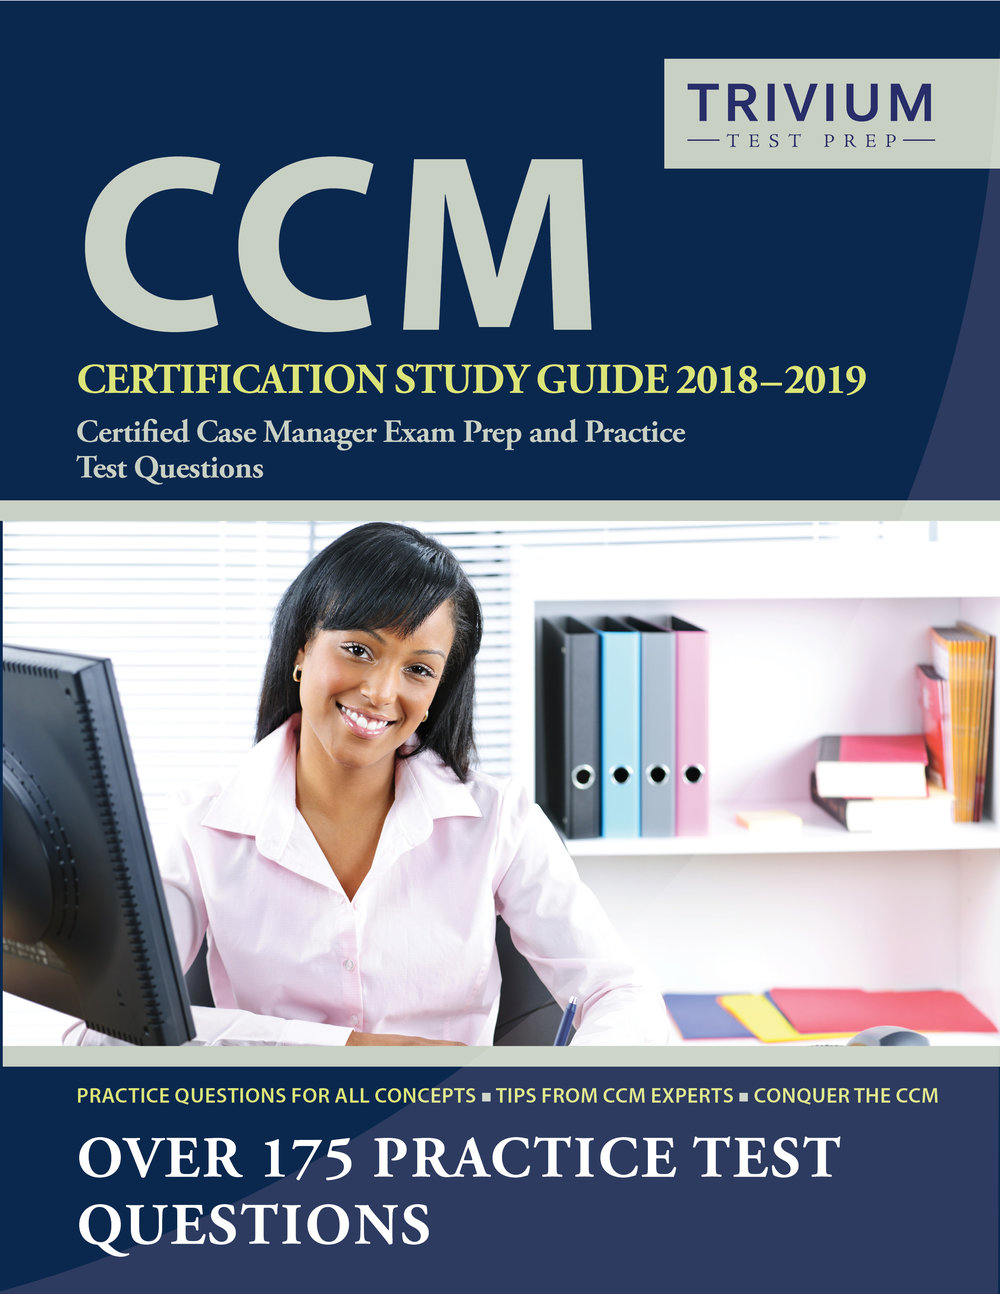 CCM Certification Study Guide Exam Prep and Practice Test Questions